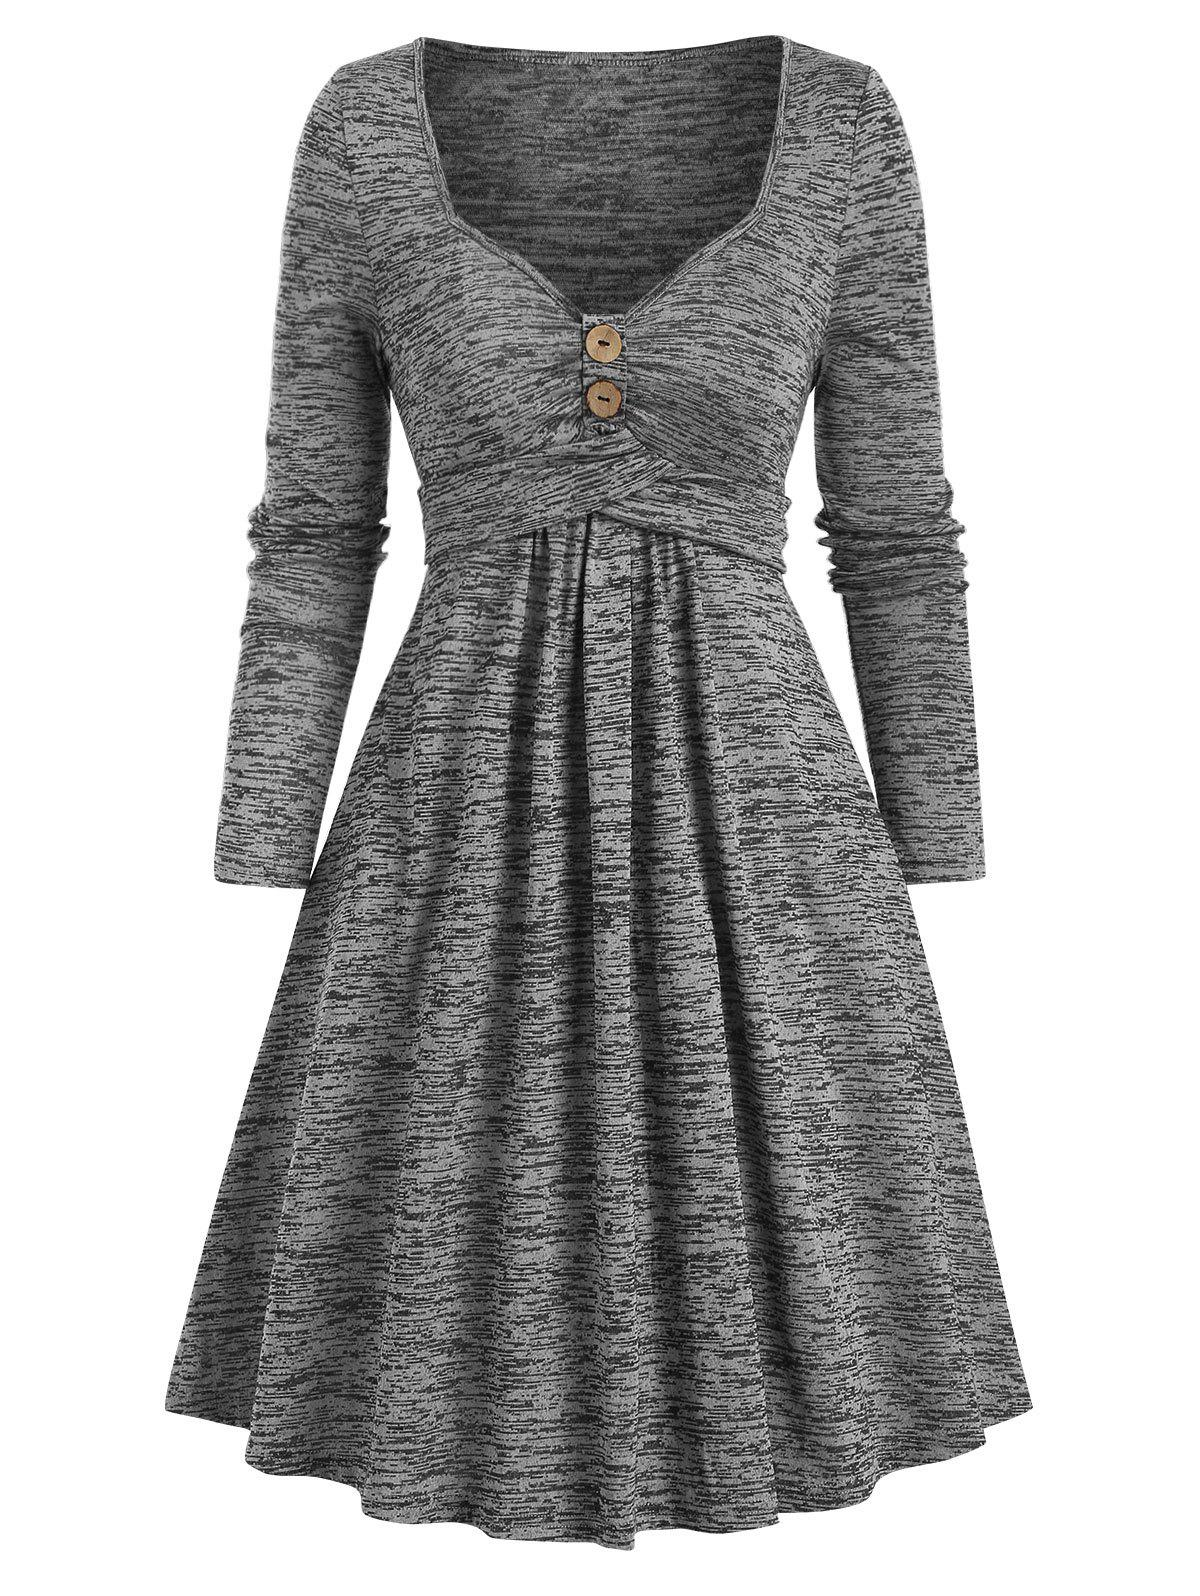 Space Dye Sweetheart Neck Crisscross Mini Dress - LIGHT GRAY L